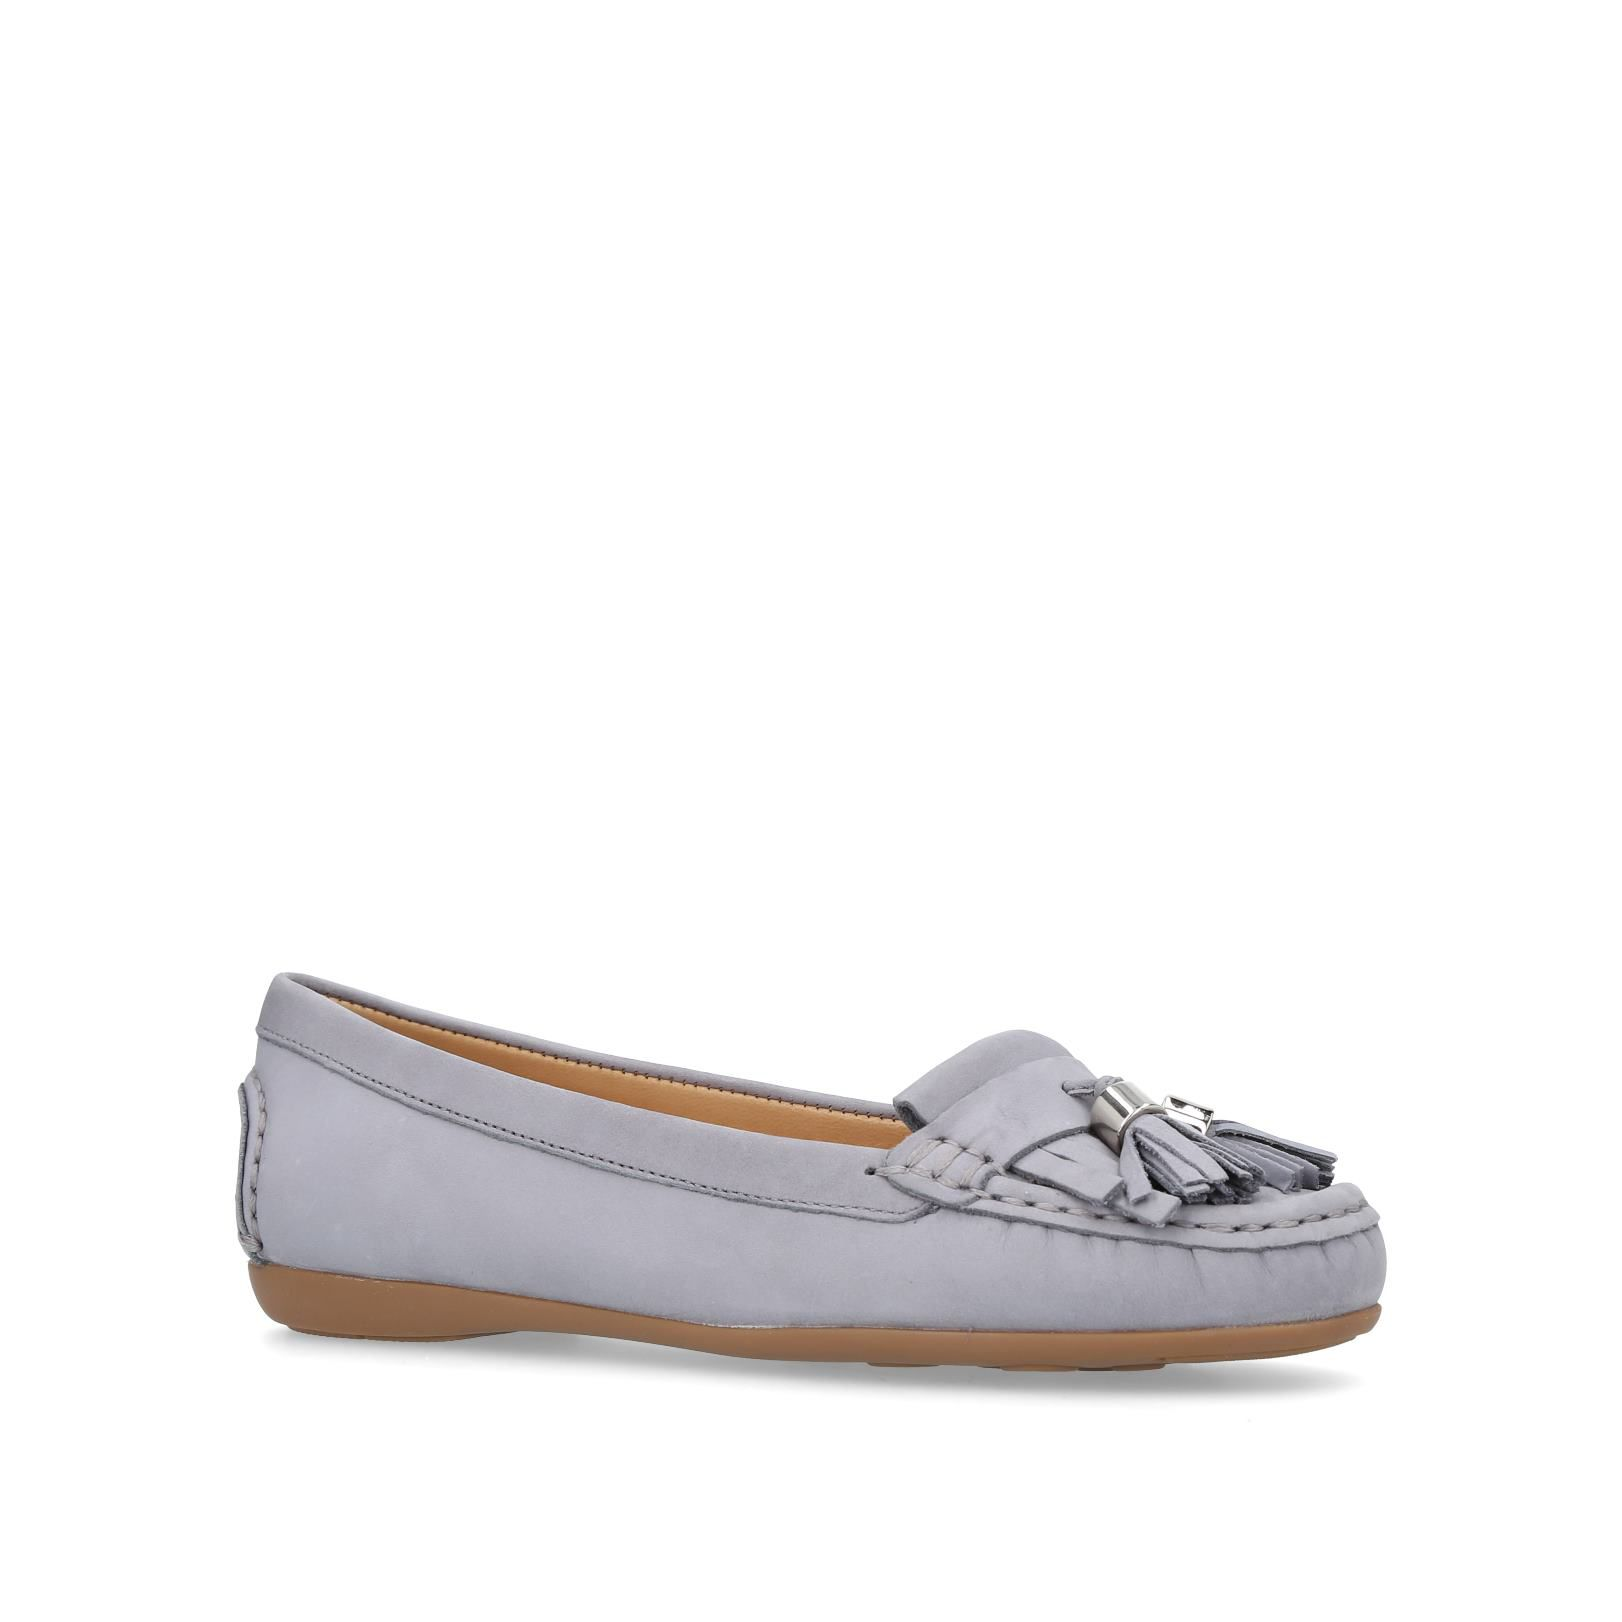 Carvela Comfort Chloe Loafers, Grey